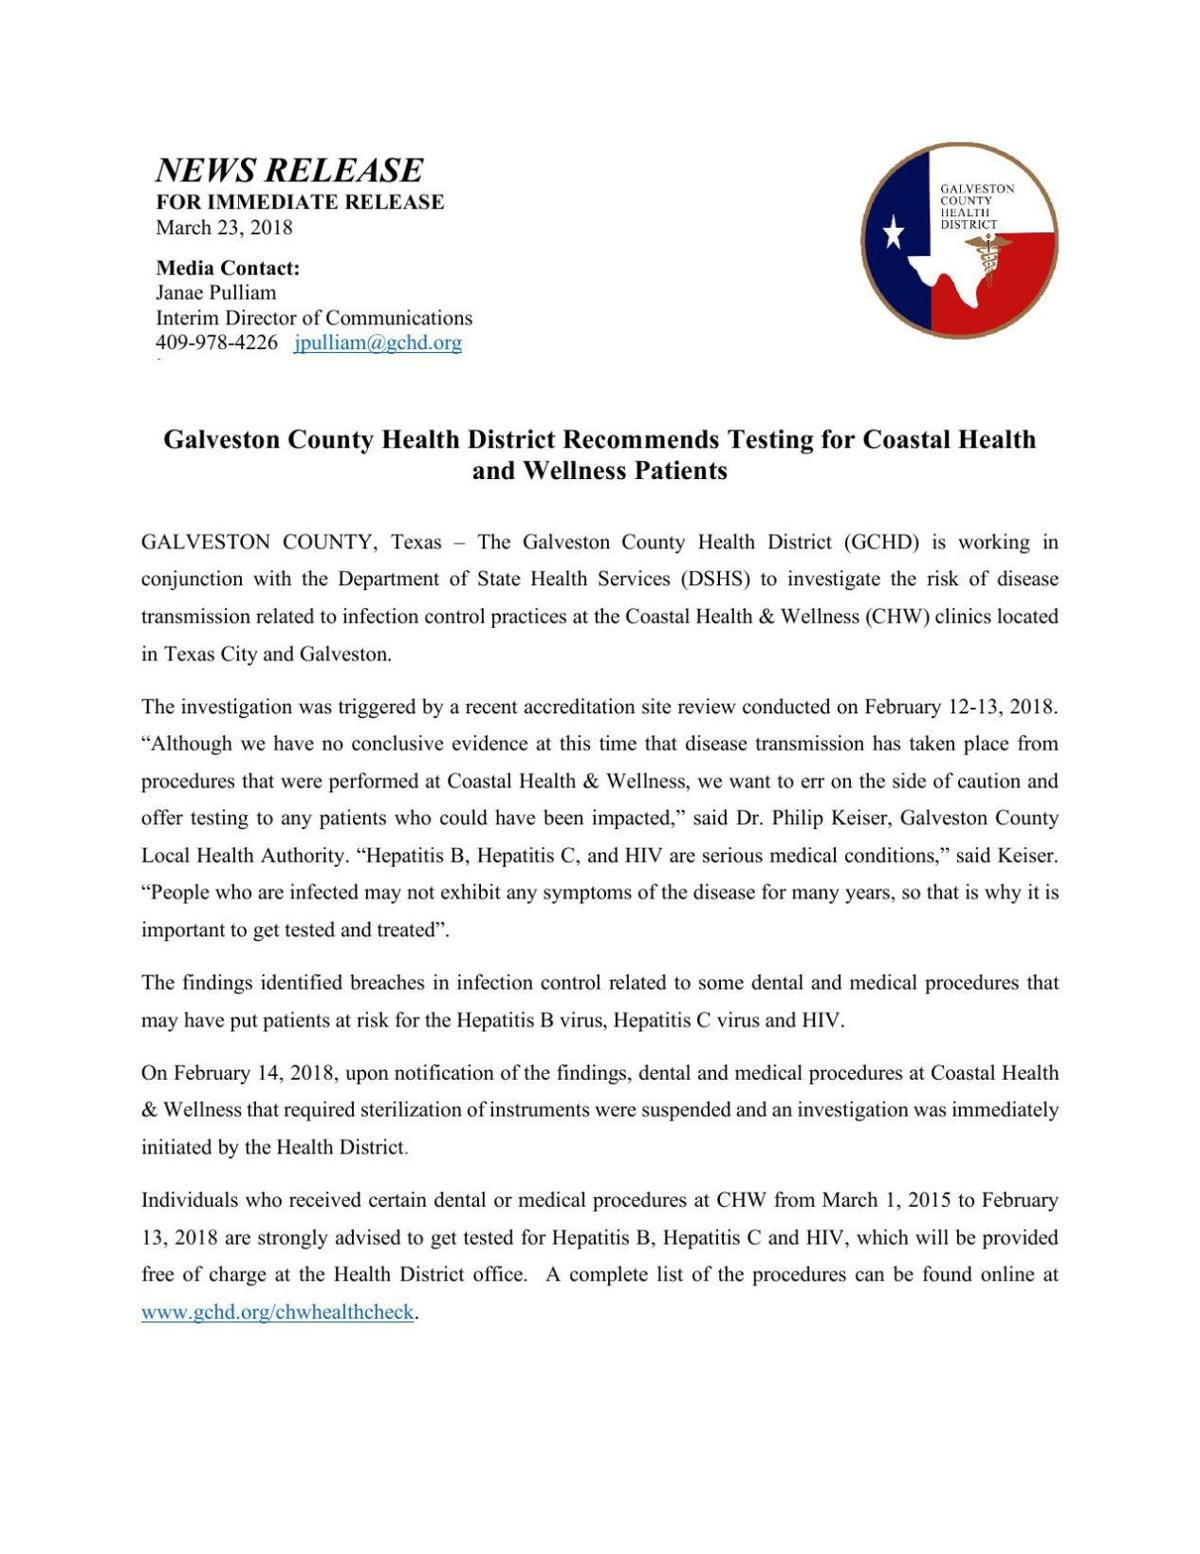 Galveston County Health District Recommends Testing for Coastal Health and  Wellness Patients | Free News | The Daily News